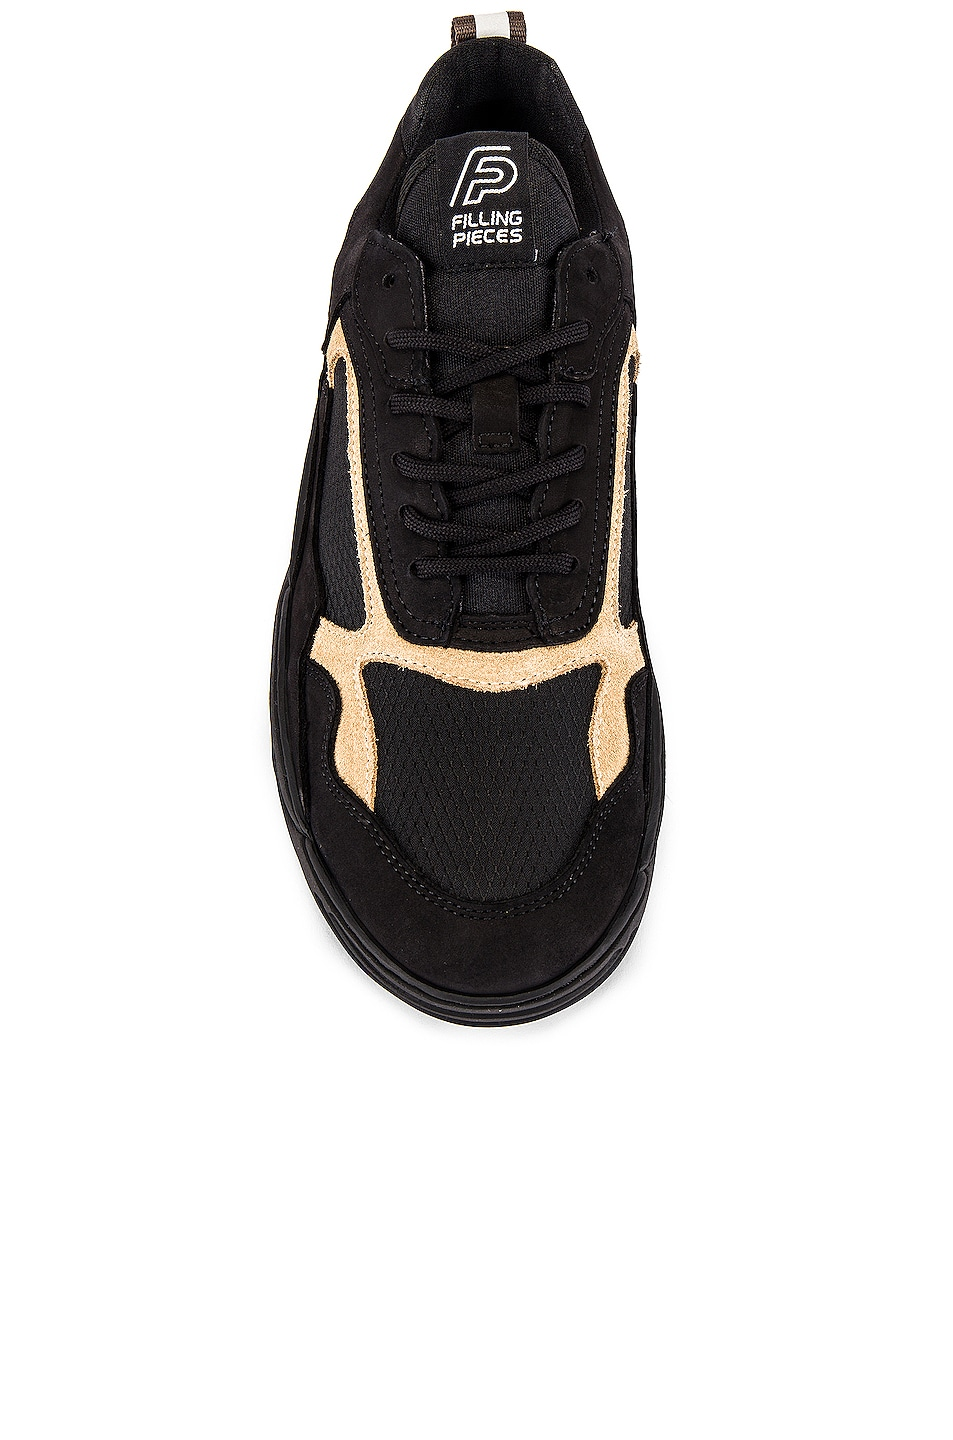 Image 4 of Filling Pieces Trimix Sneaker in All Black